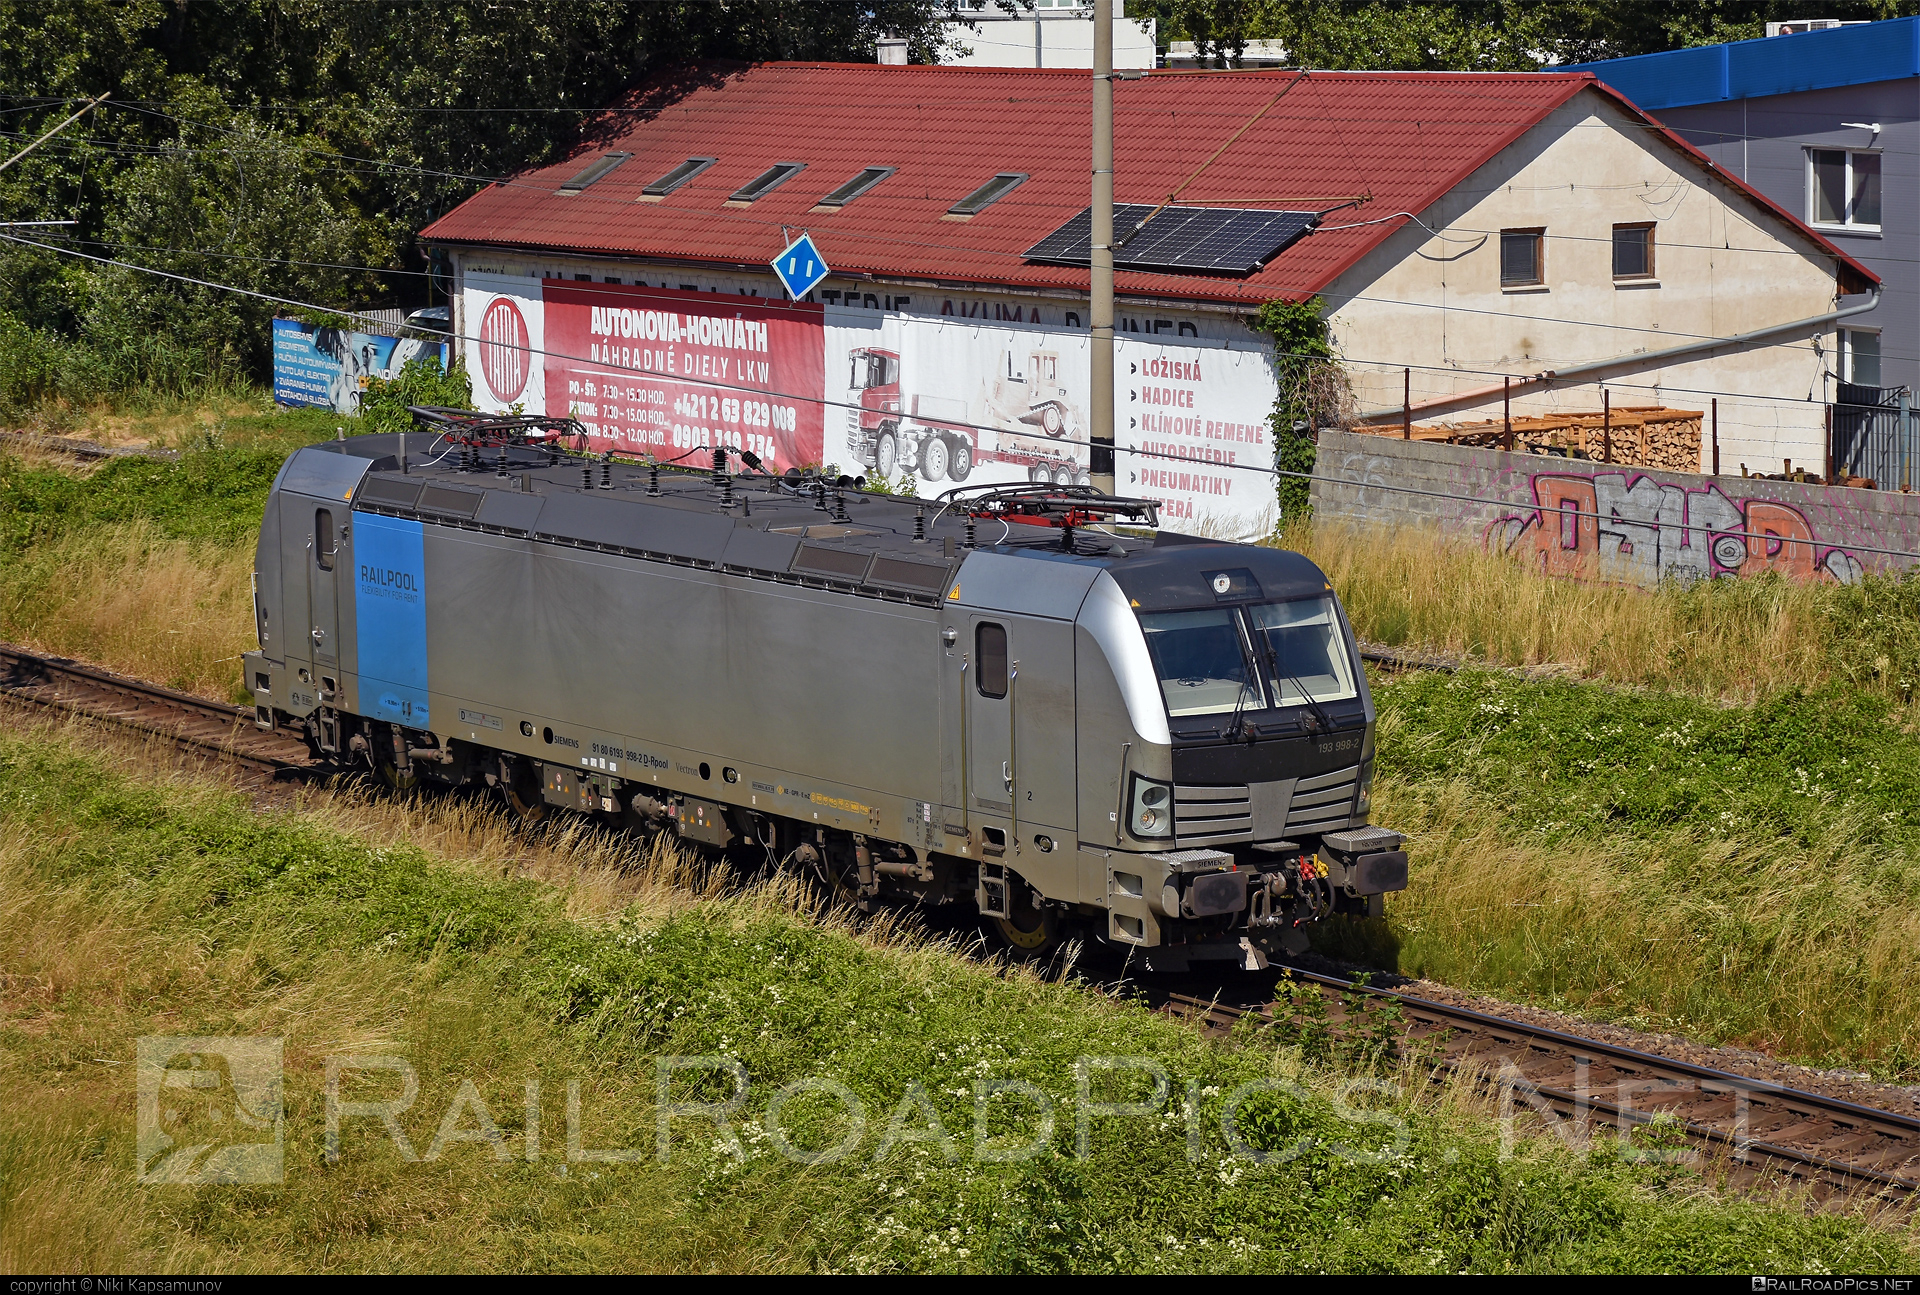 Siemens Vectron AC - 193 998-2 operated by ecco-rail GmbH #eccorail #eccorailgmbh #railpool #railpoolgmbh #siemens #siemensvectron #siemensvectronac #vectron #vectronac